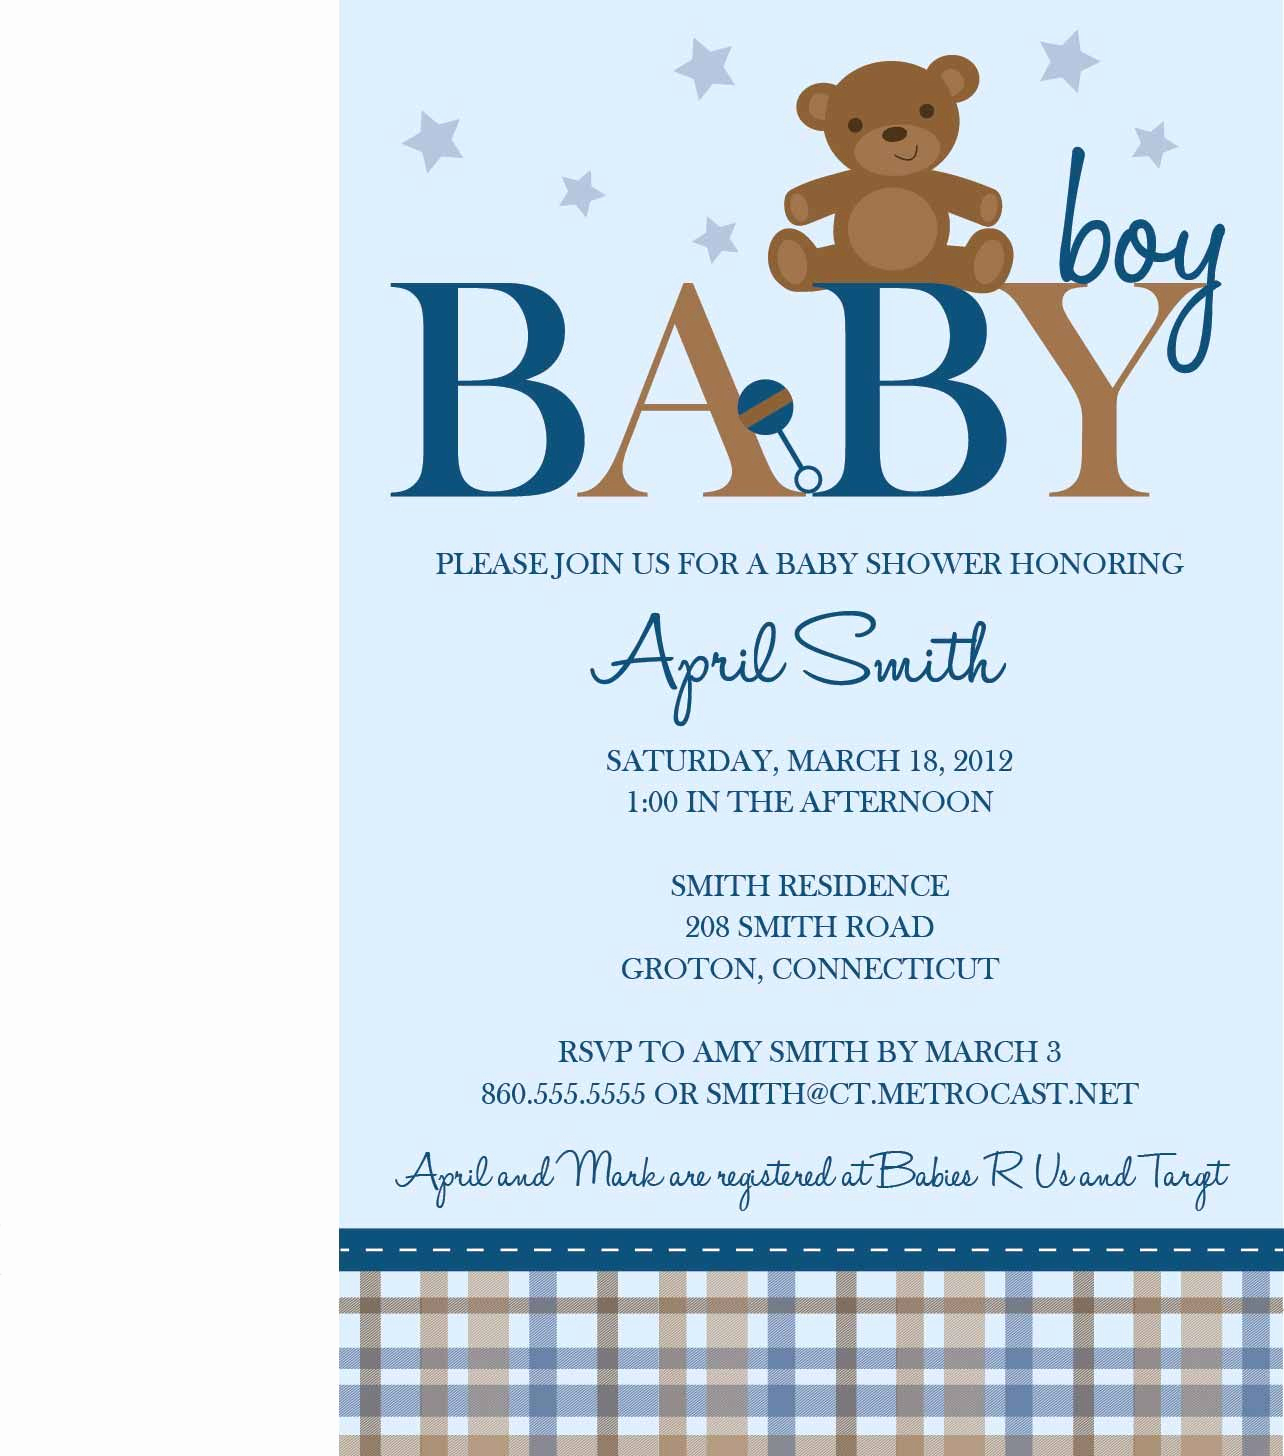 Boy Baby Shower Invitation Awesome Teddy Bear Baby Shower Templates